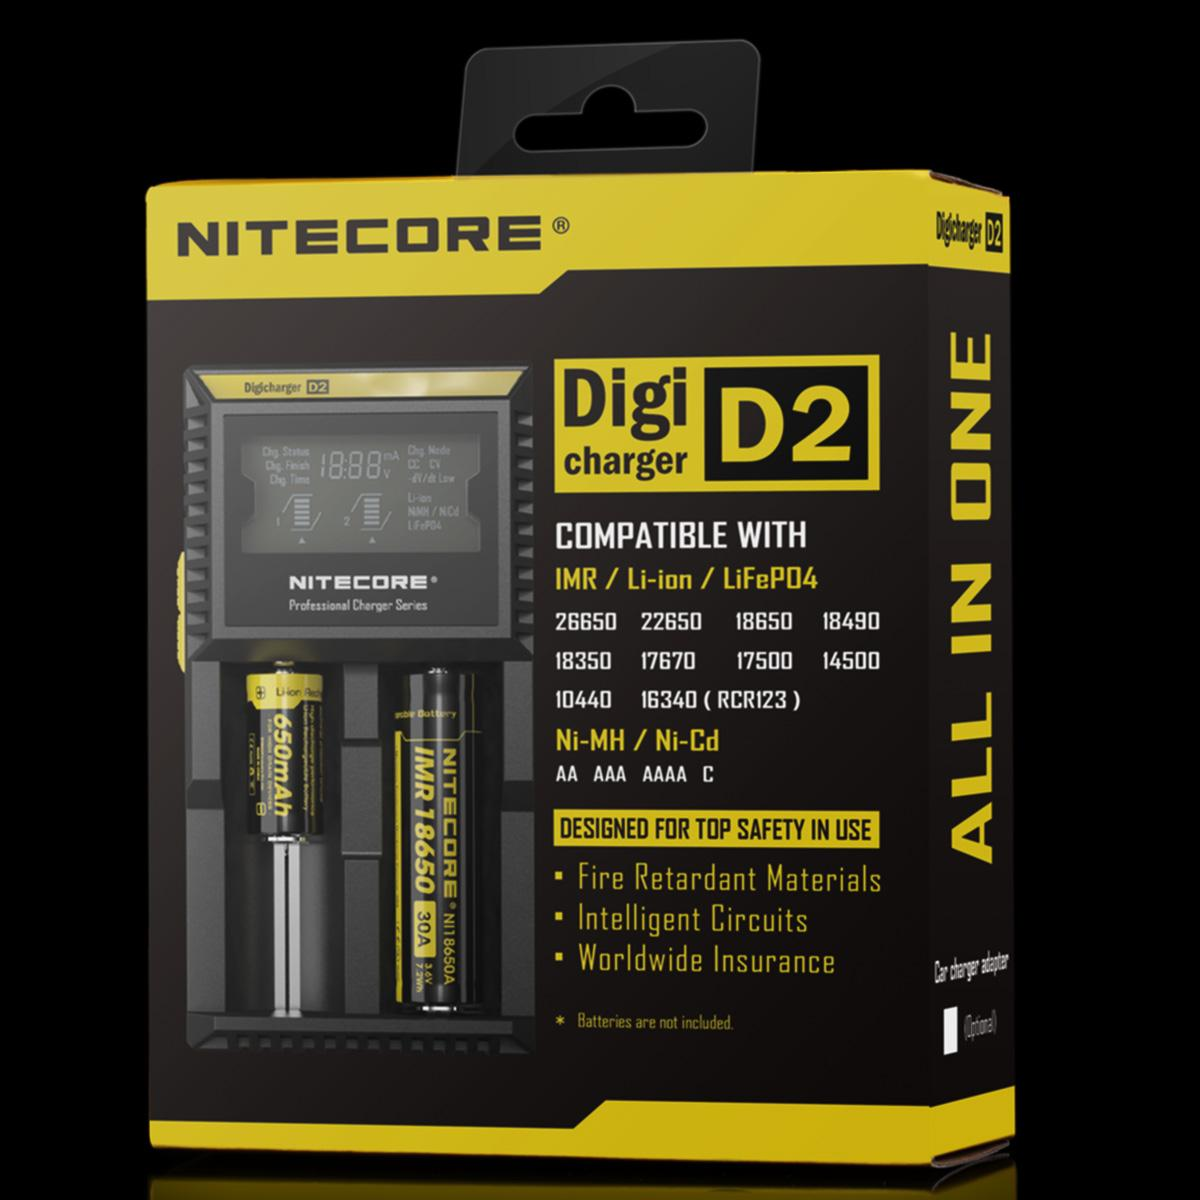 Nitecore D2 charger for 18650 batteries Ireland